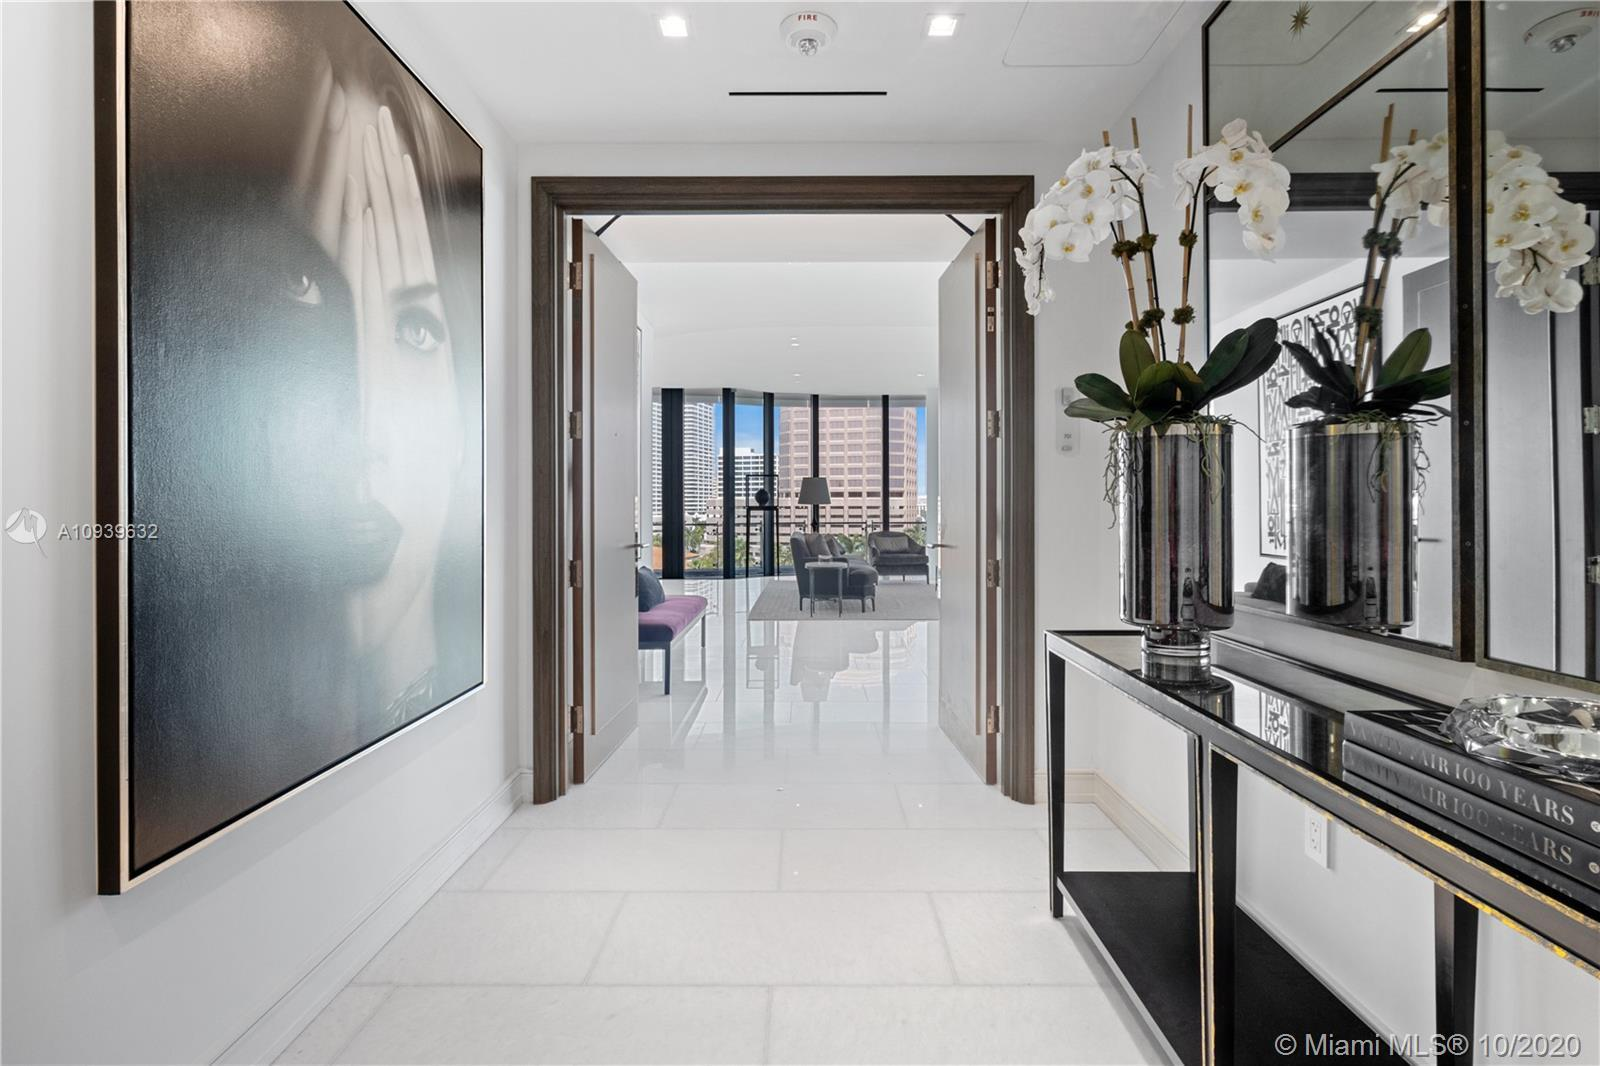 Introducing Residence 701, an impeccably designed home in the sky at Palm Beach's most exclusive new